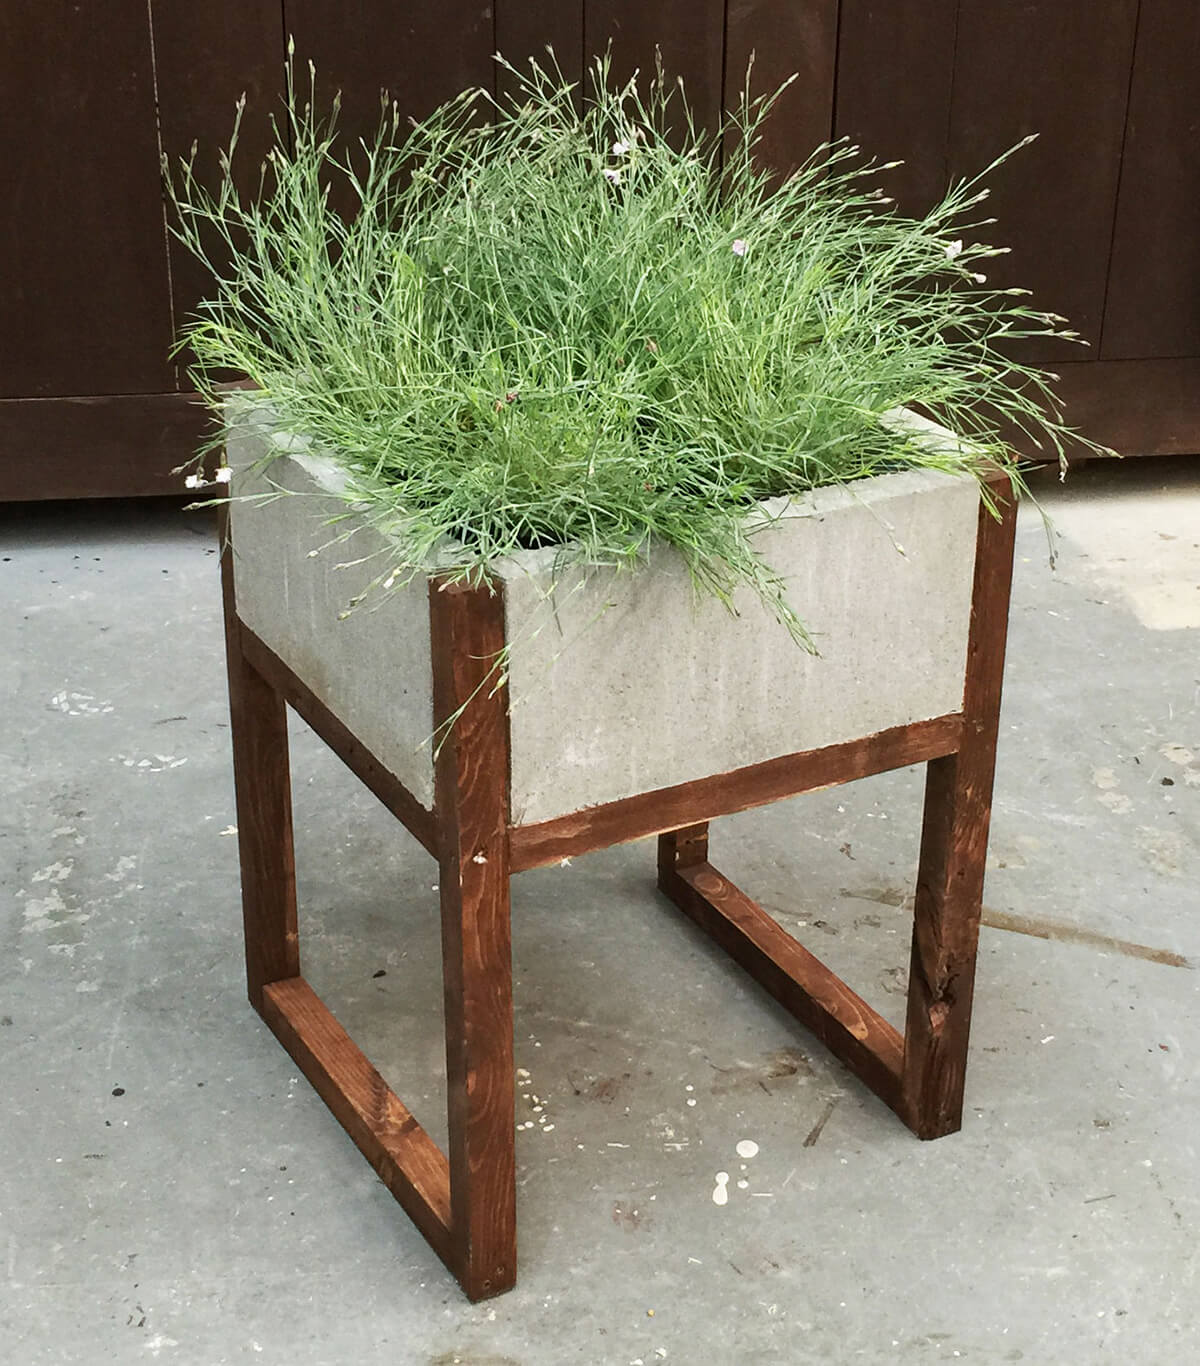 Modern Concrete and Wood Planter DIY Project